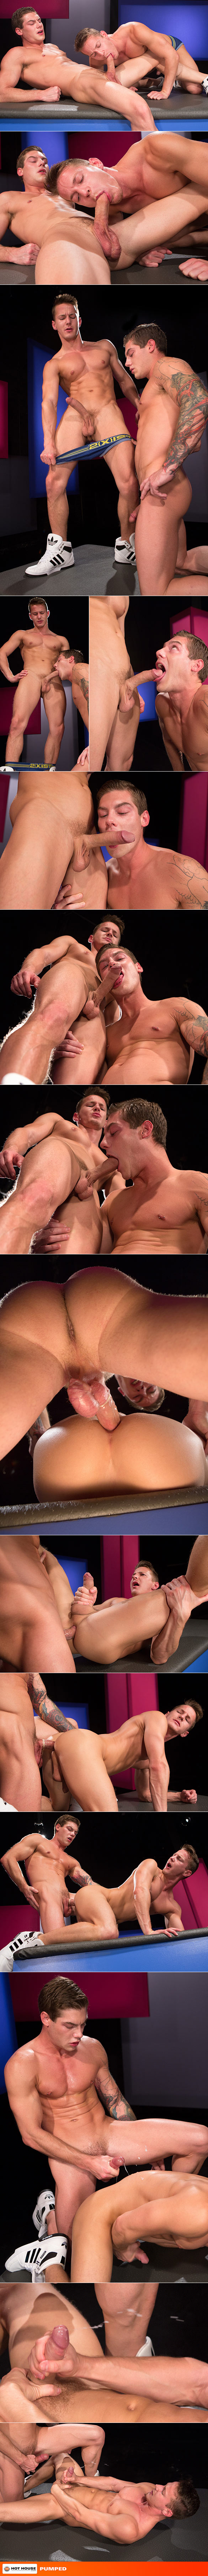 "Hot House: Vance Crawford fucks Darius Ferdynand in ""Pumped"""